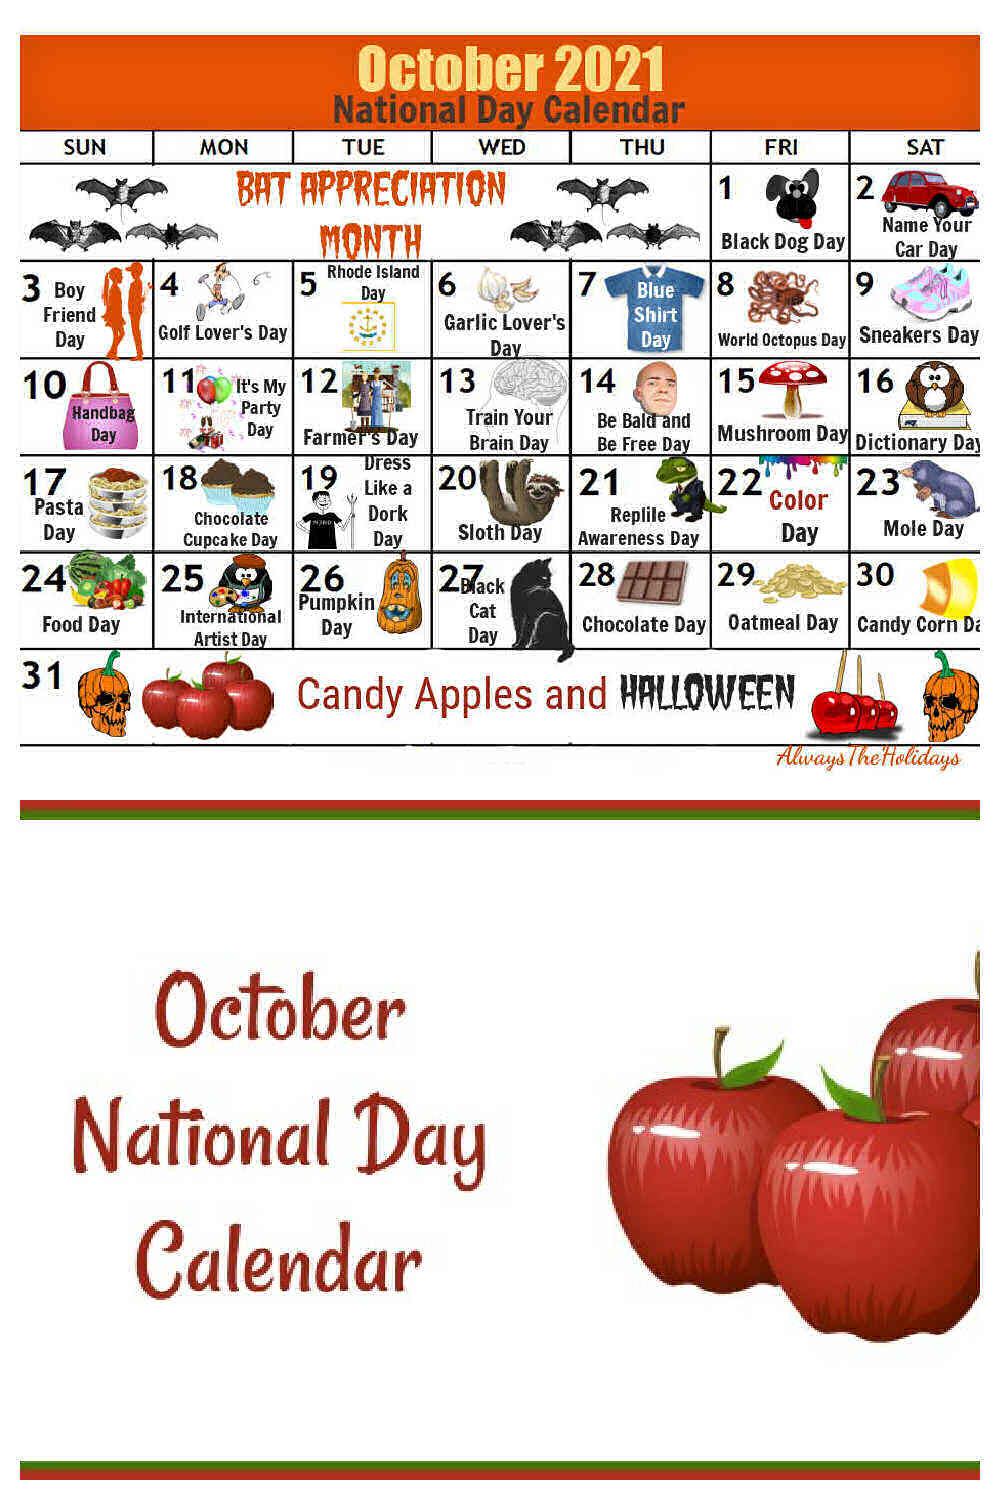 Apples and words October National Day Calendar with calendar above it.